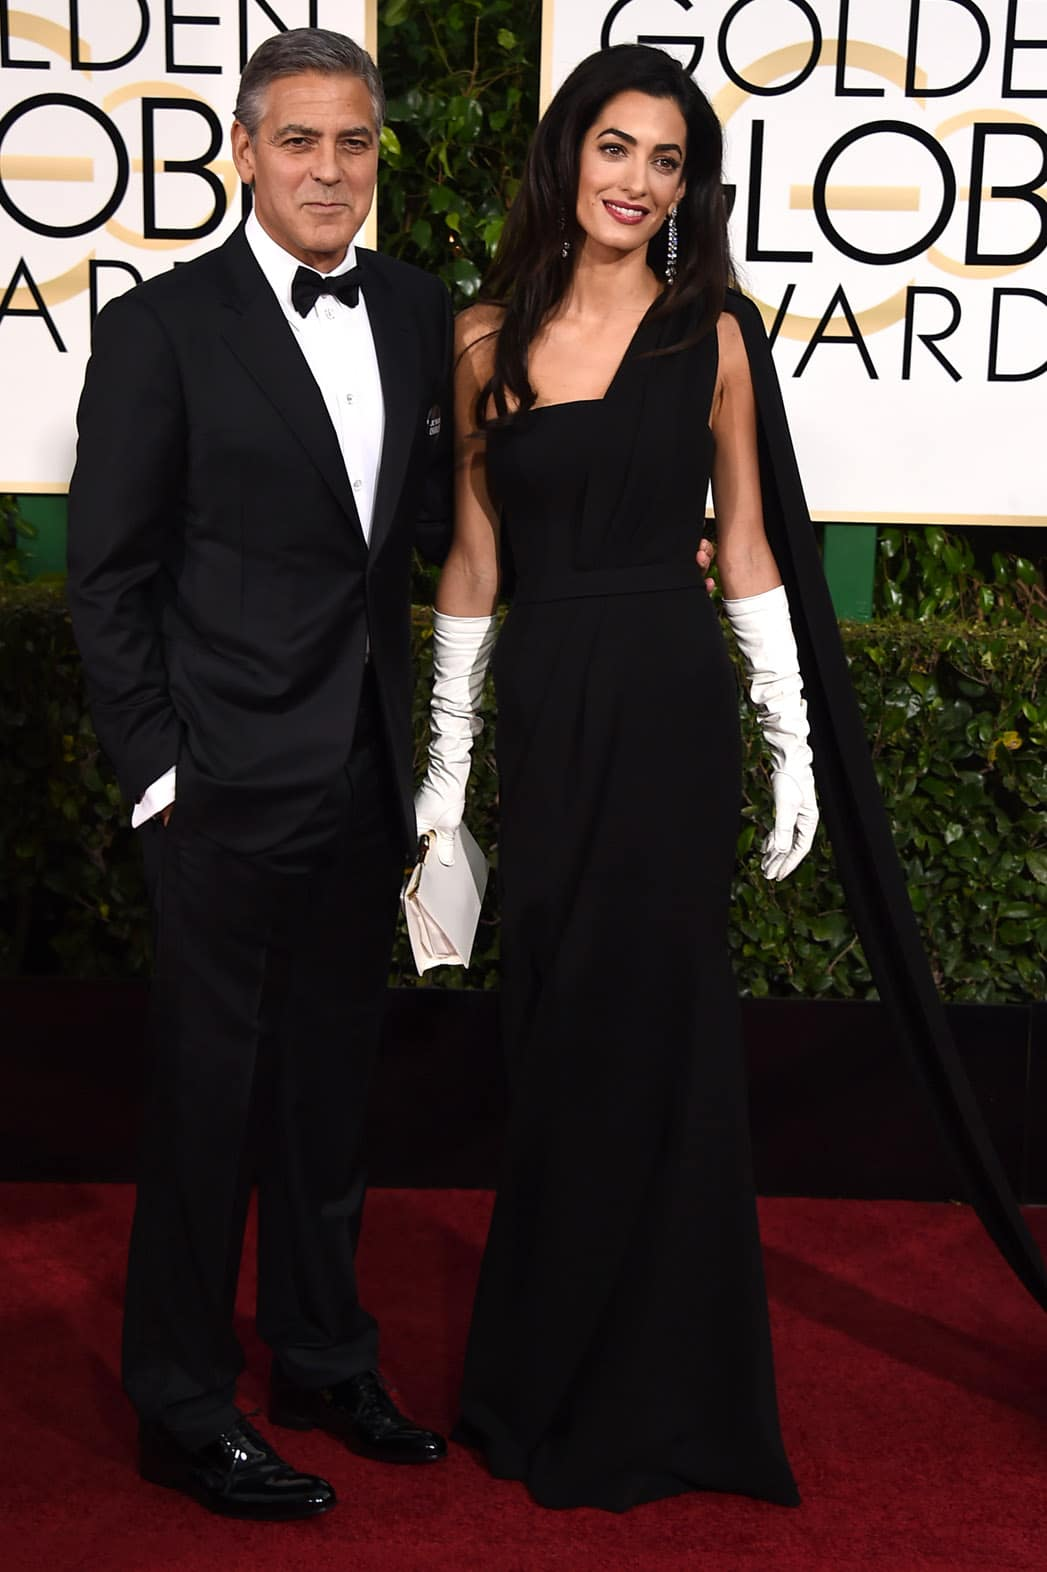 Golden Globes: Top 10 Best Dressed of All Time 7